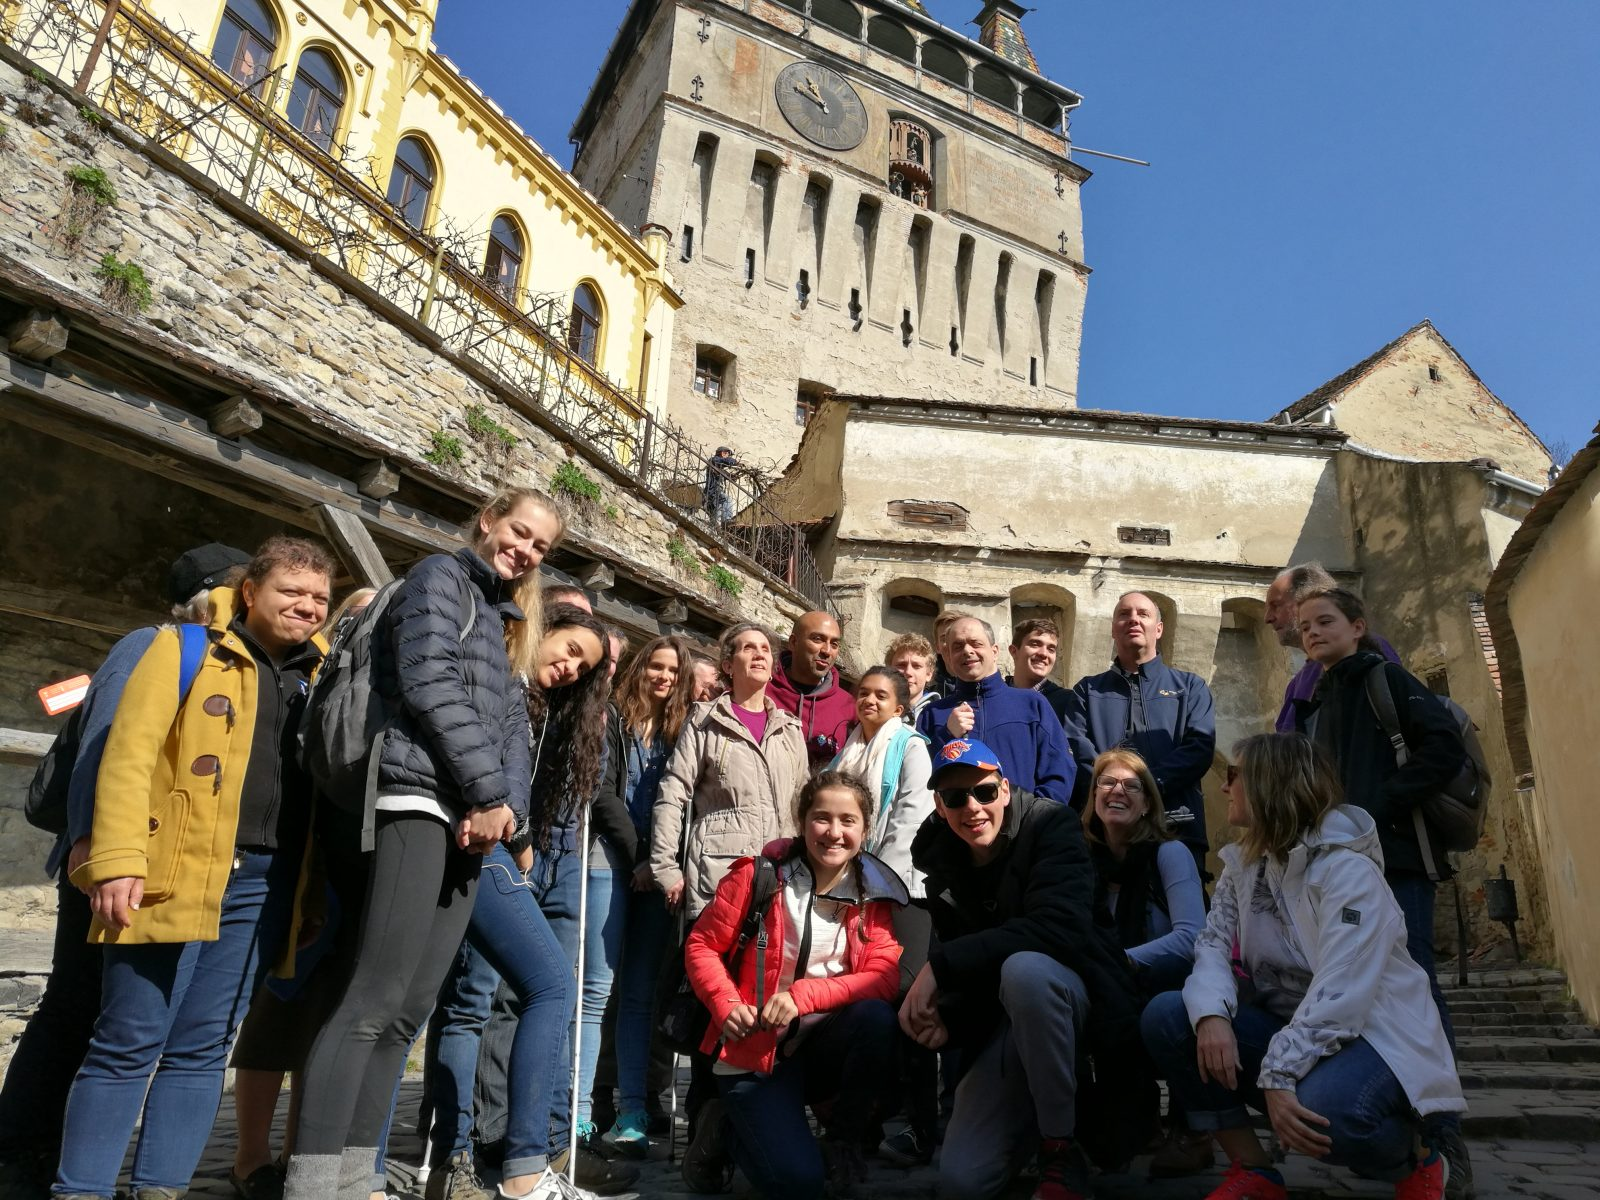 The group from the International School of London, Surrey, with our VI travelers in Romania!